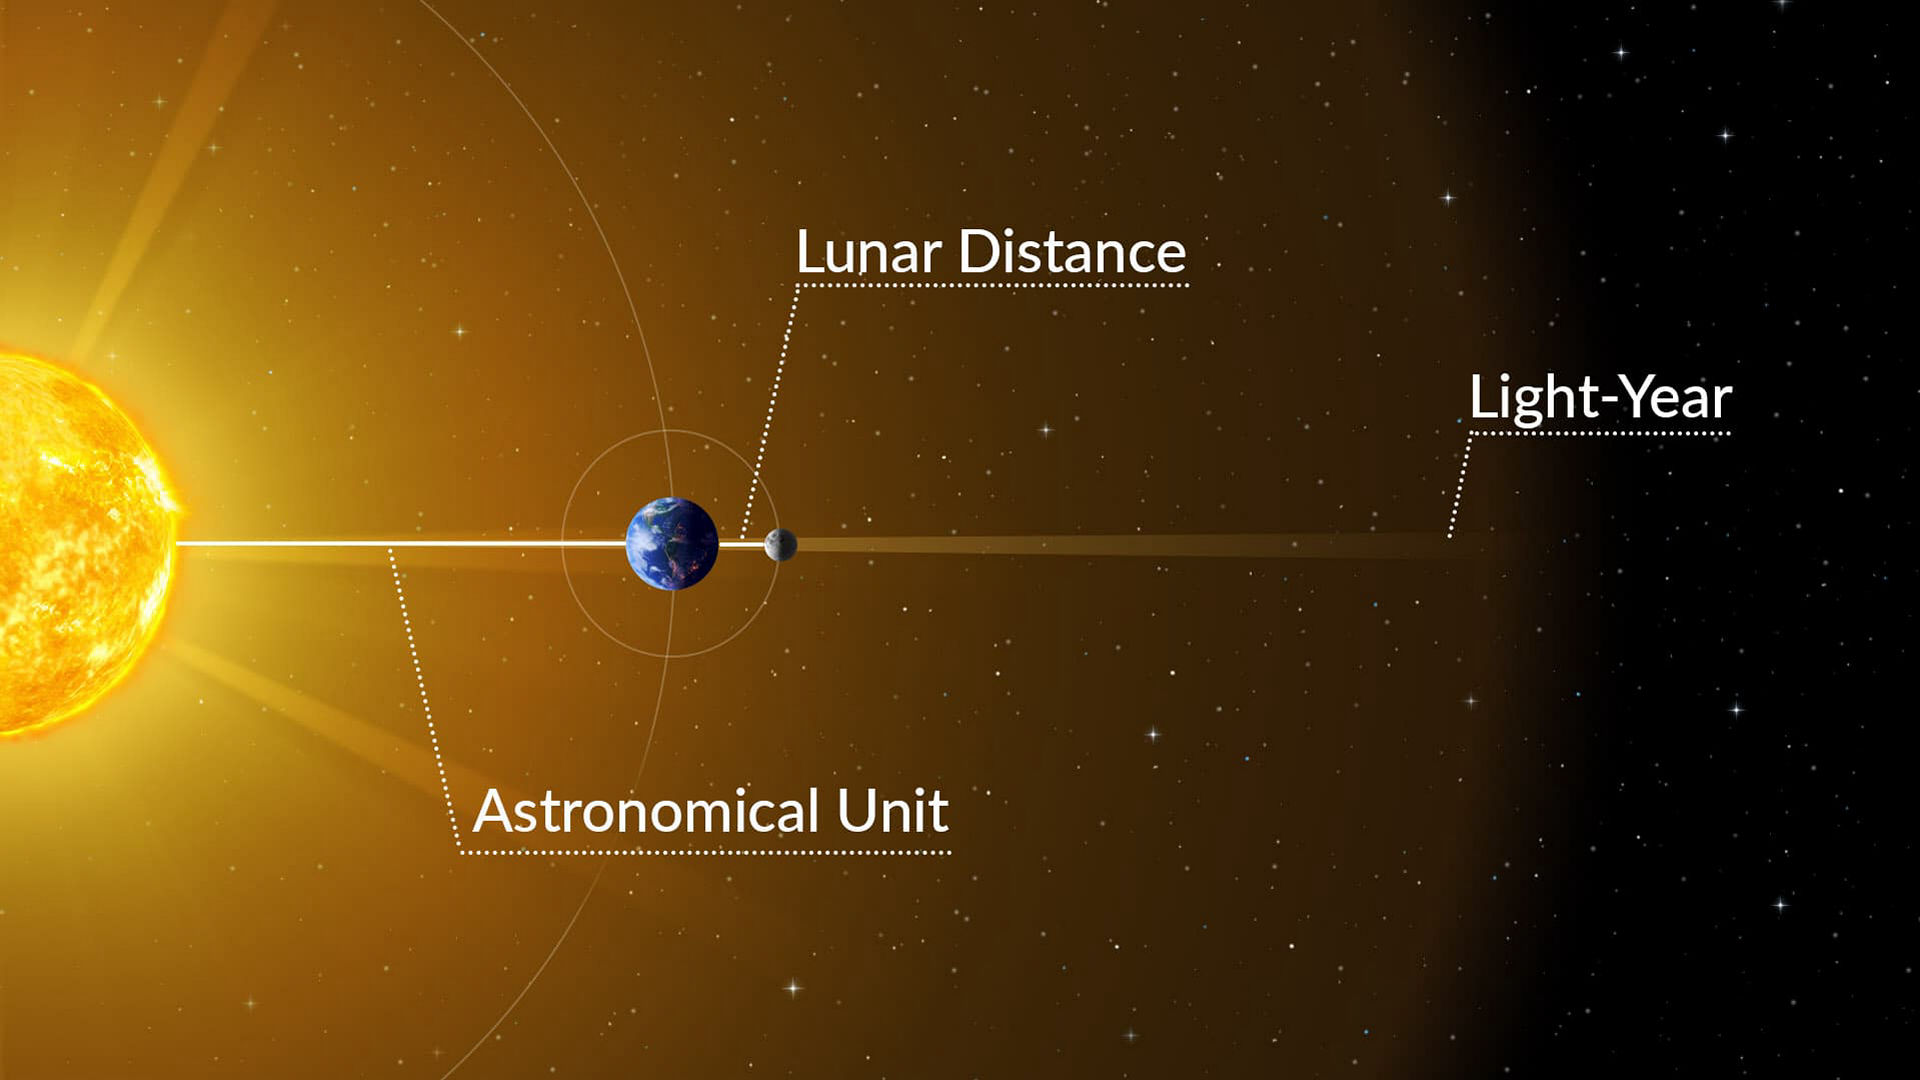 What's bigger: LD, AU or Light-Year?